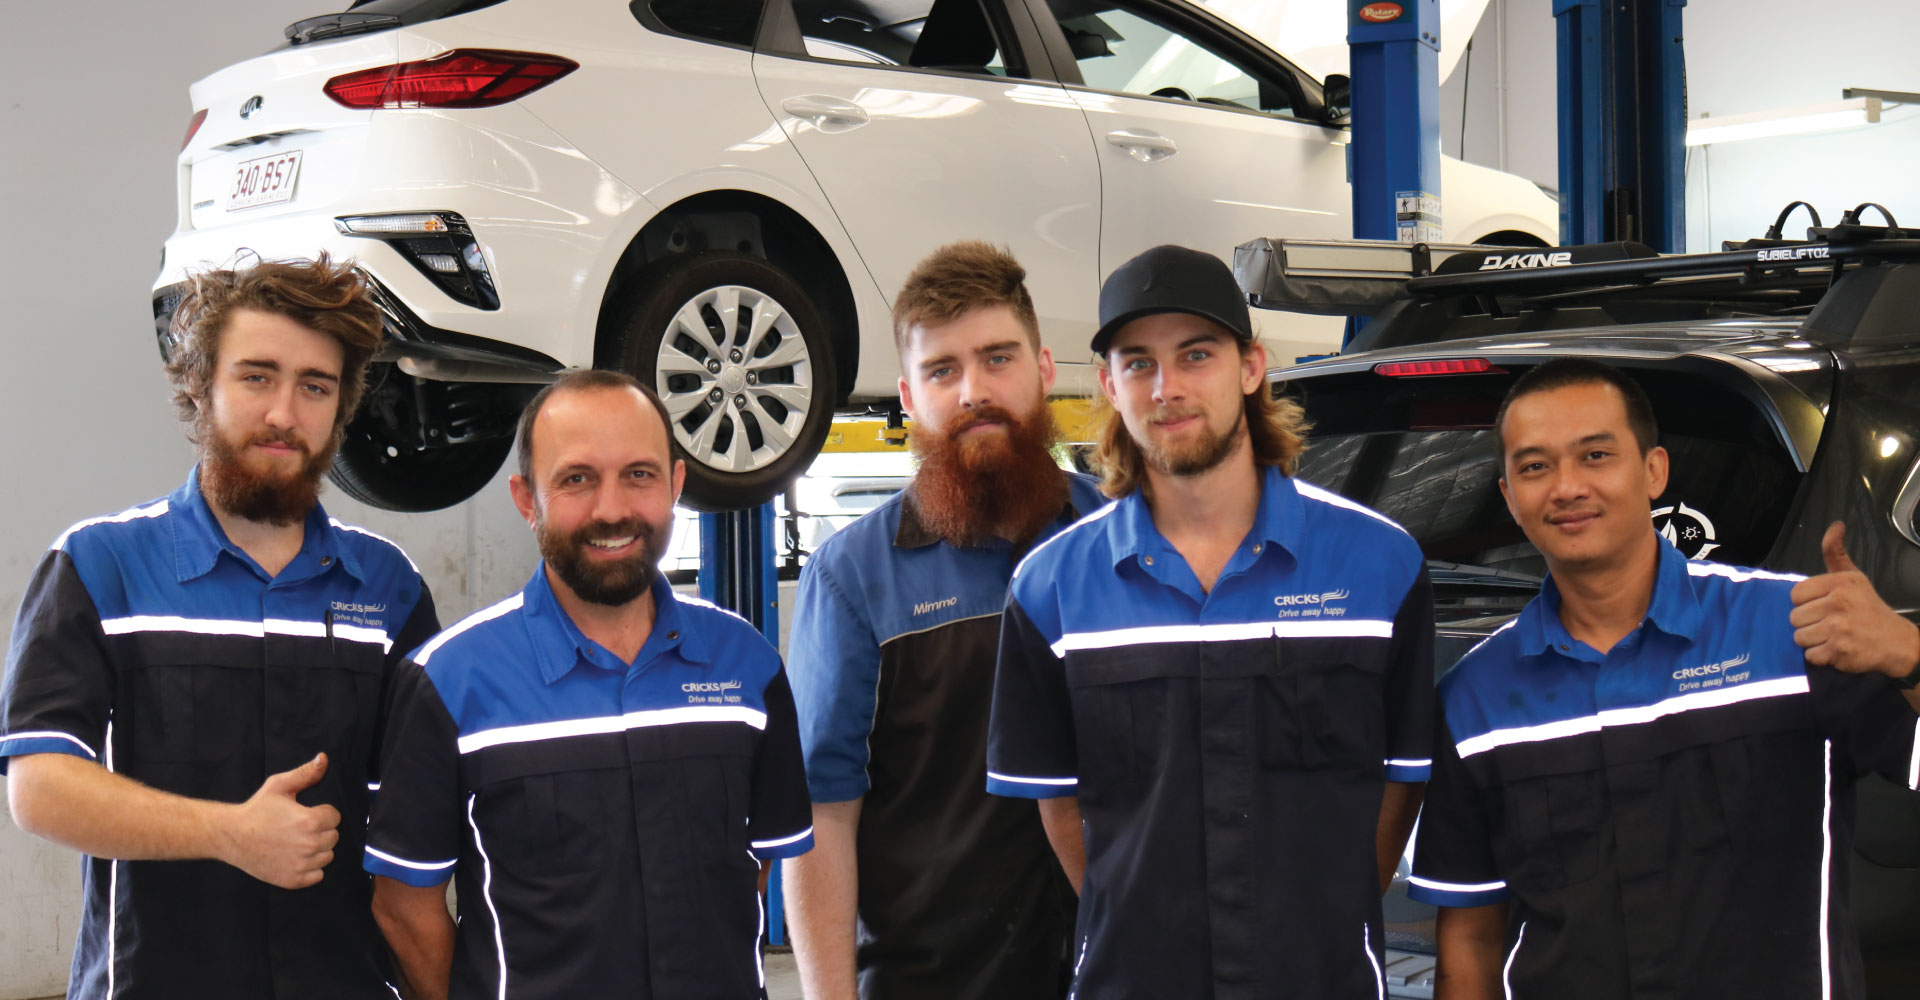 THE CRICKS NOOSA MAIL | ARE YOU OUR NEXT TECHNICIAN?